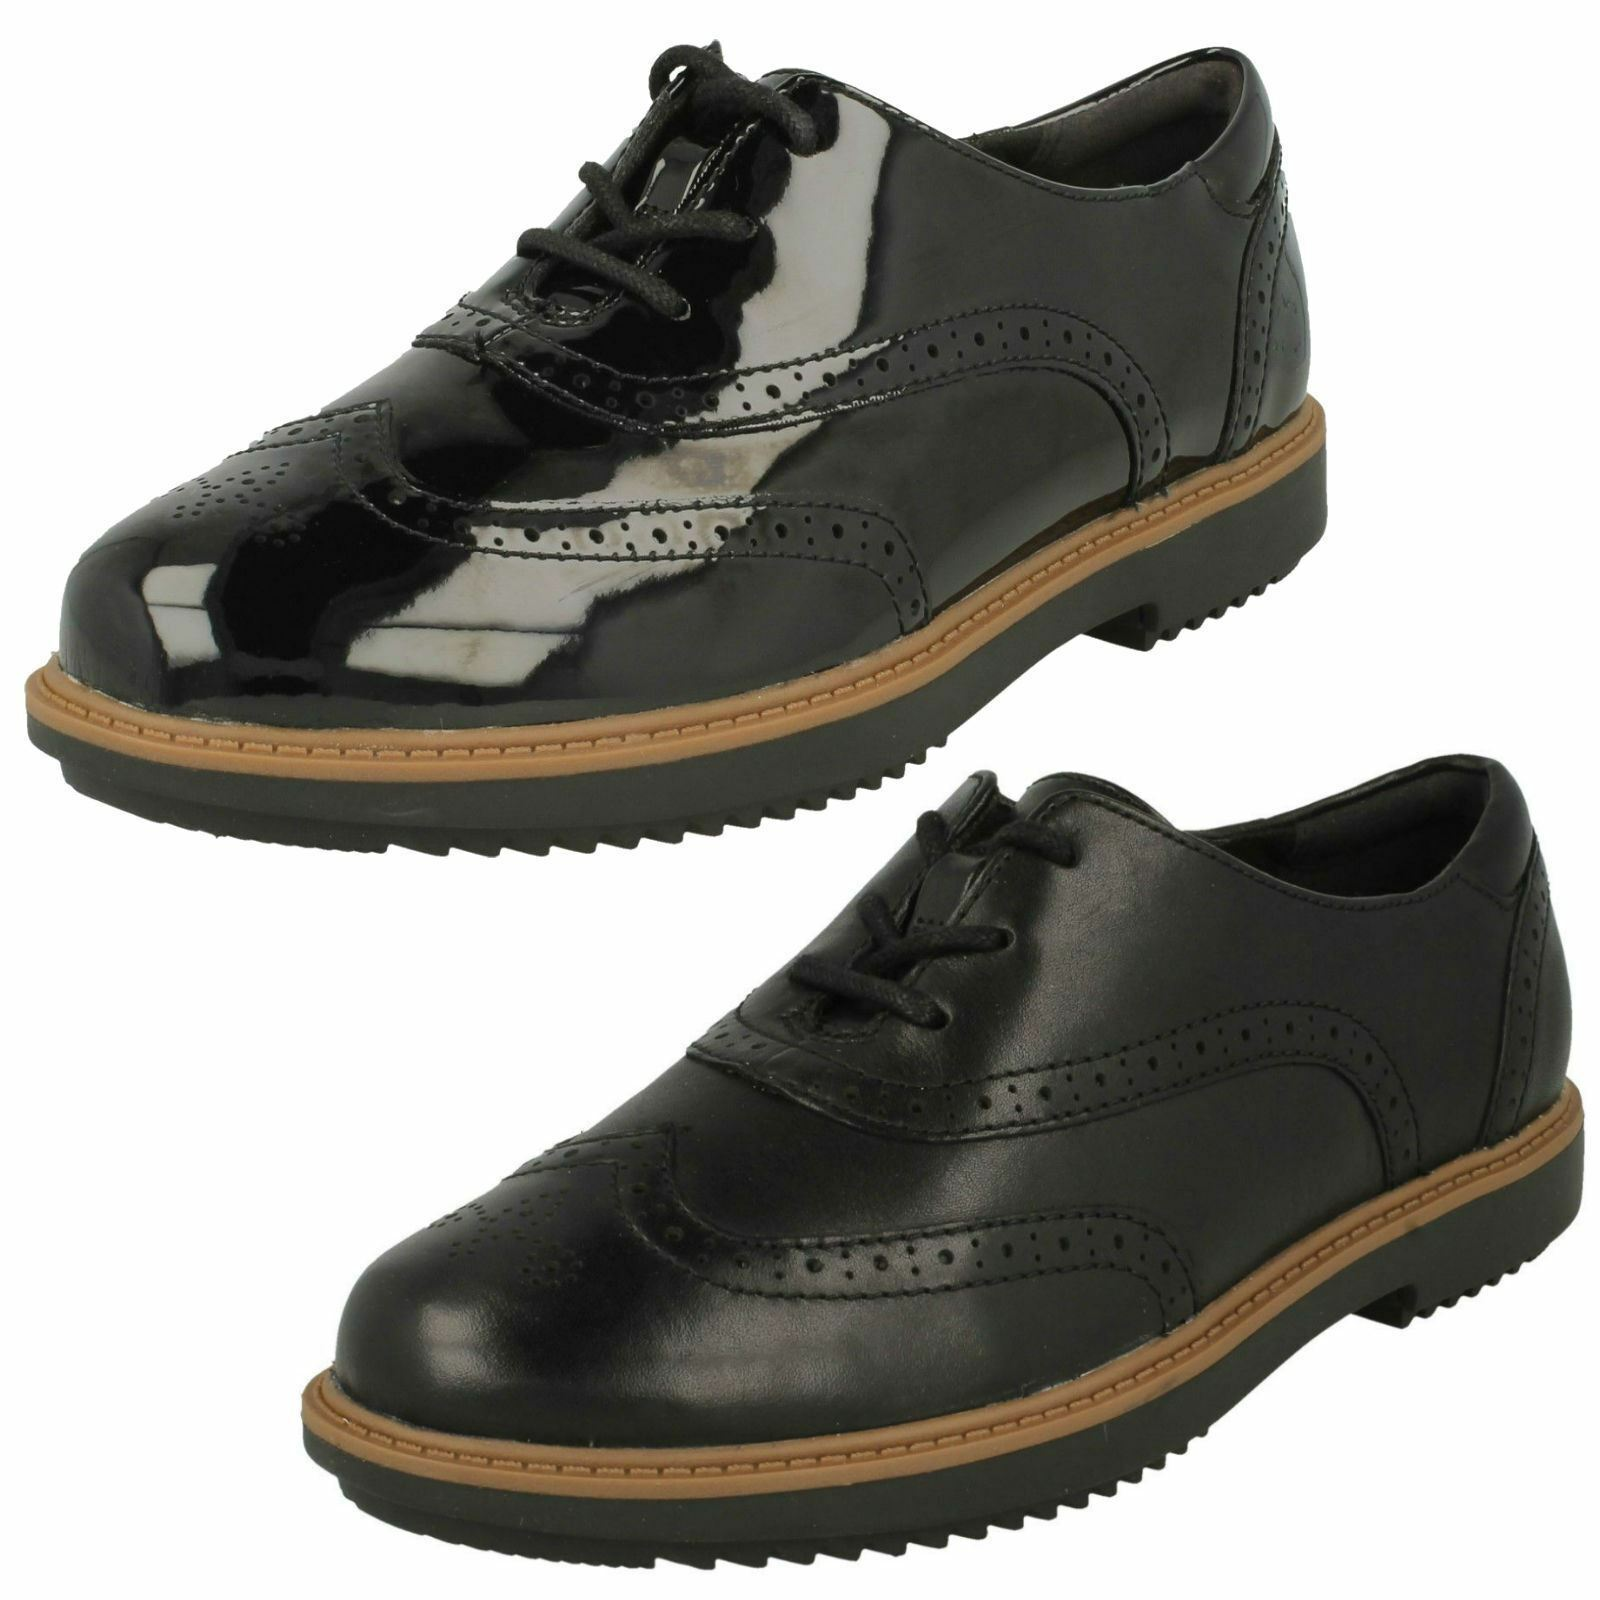 LADIES LADIES LADIES CLARKS PATENT SMART FORMAL LACE UP WORK BROGUE Schuhe SIZE RAISIE HILDE c26f1c